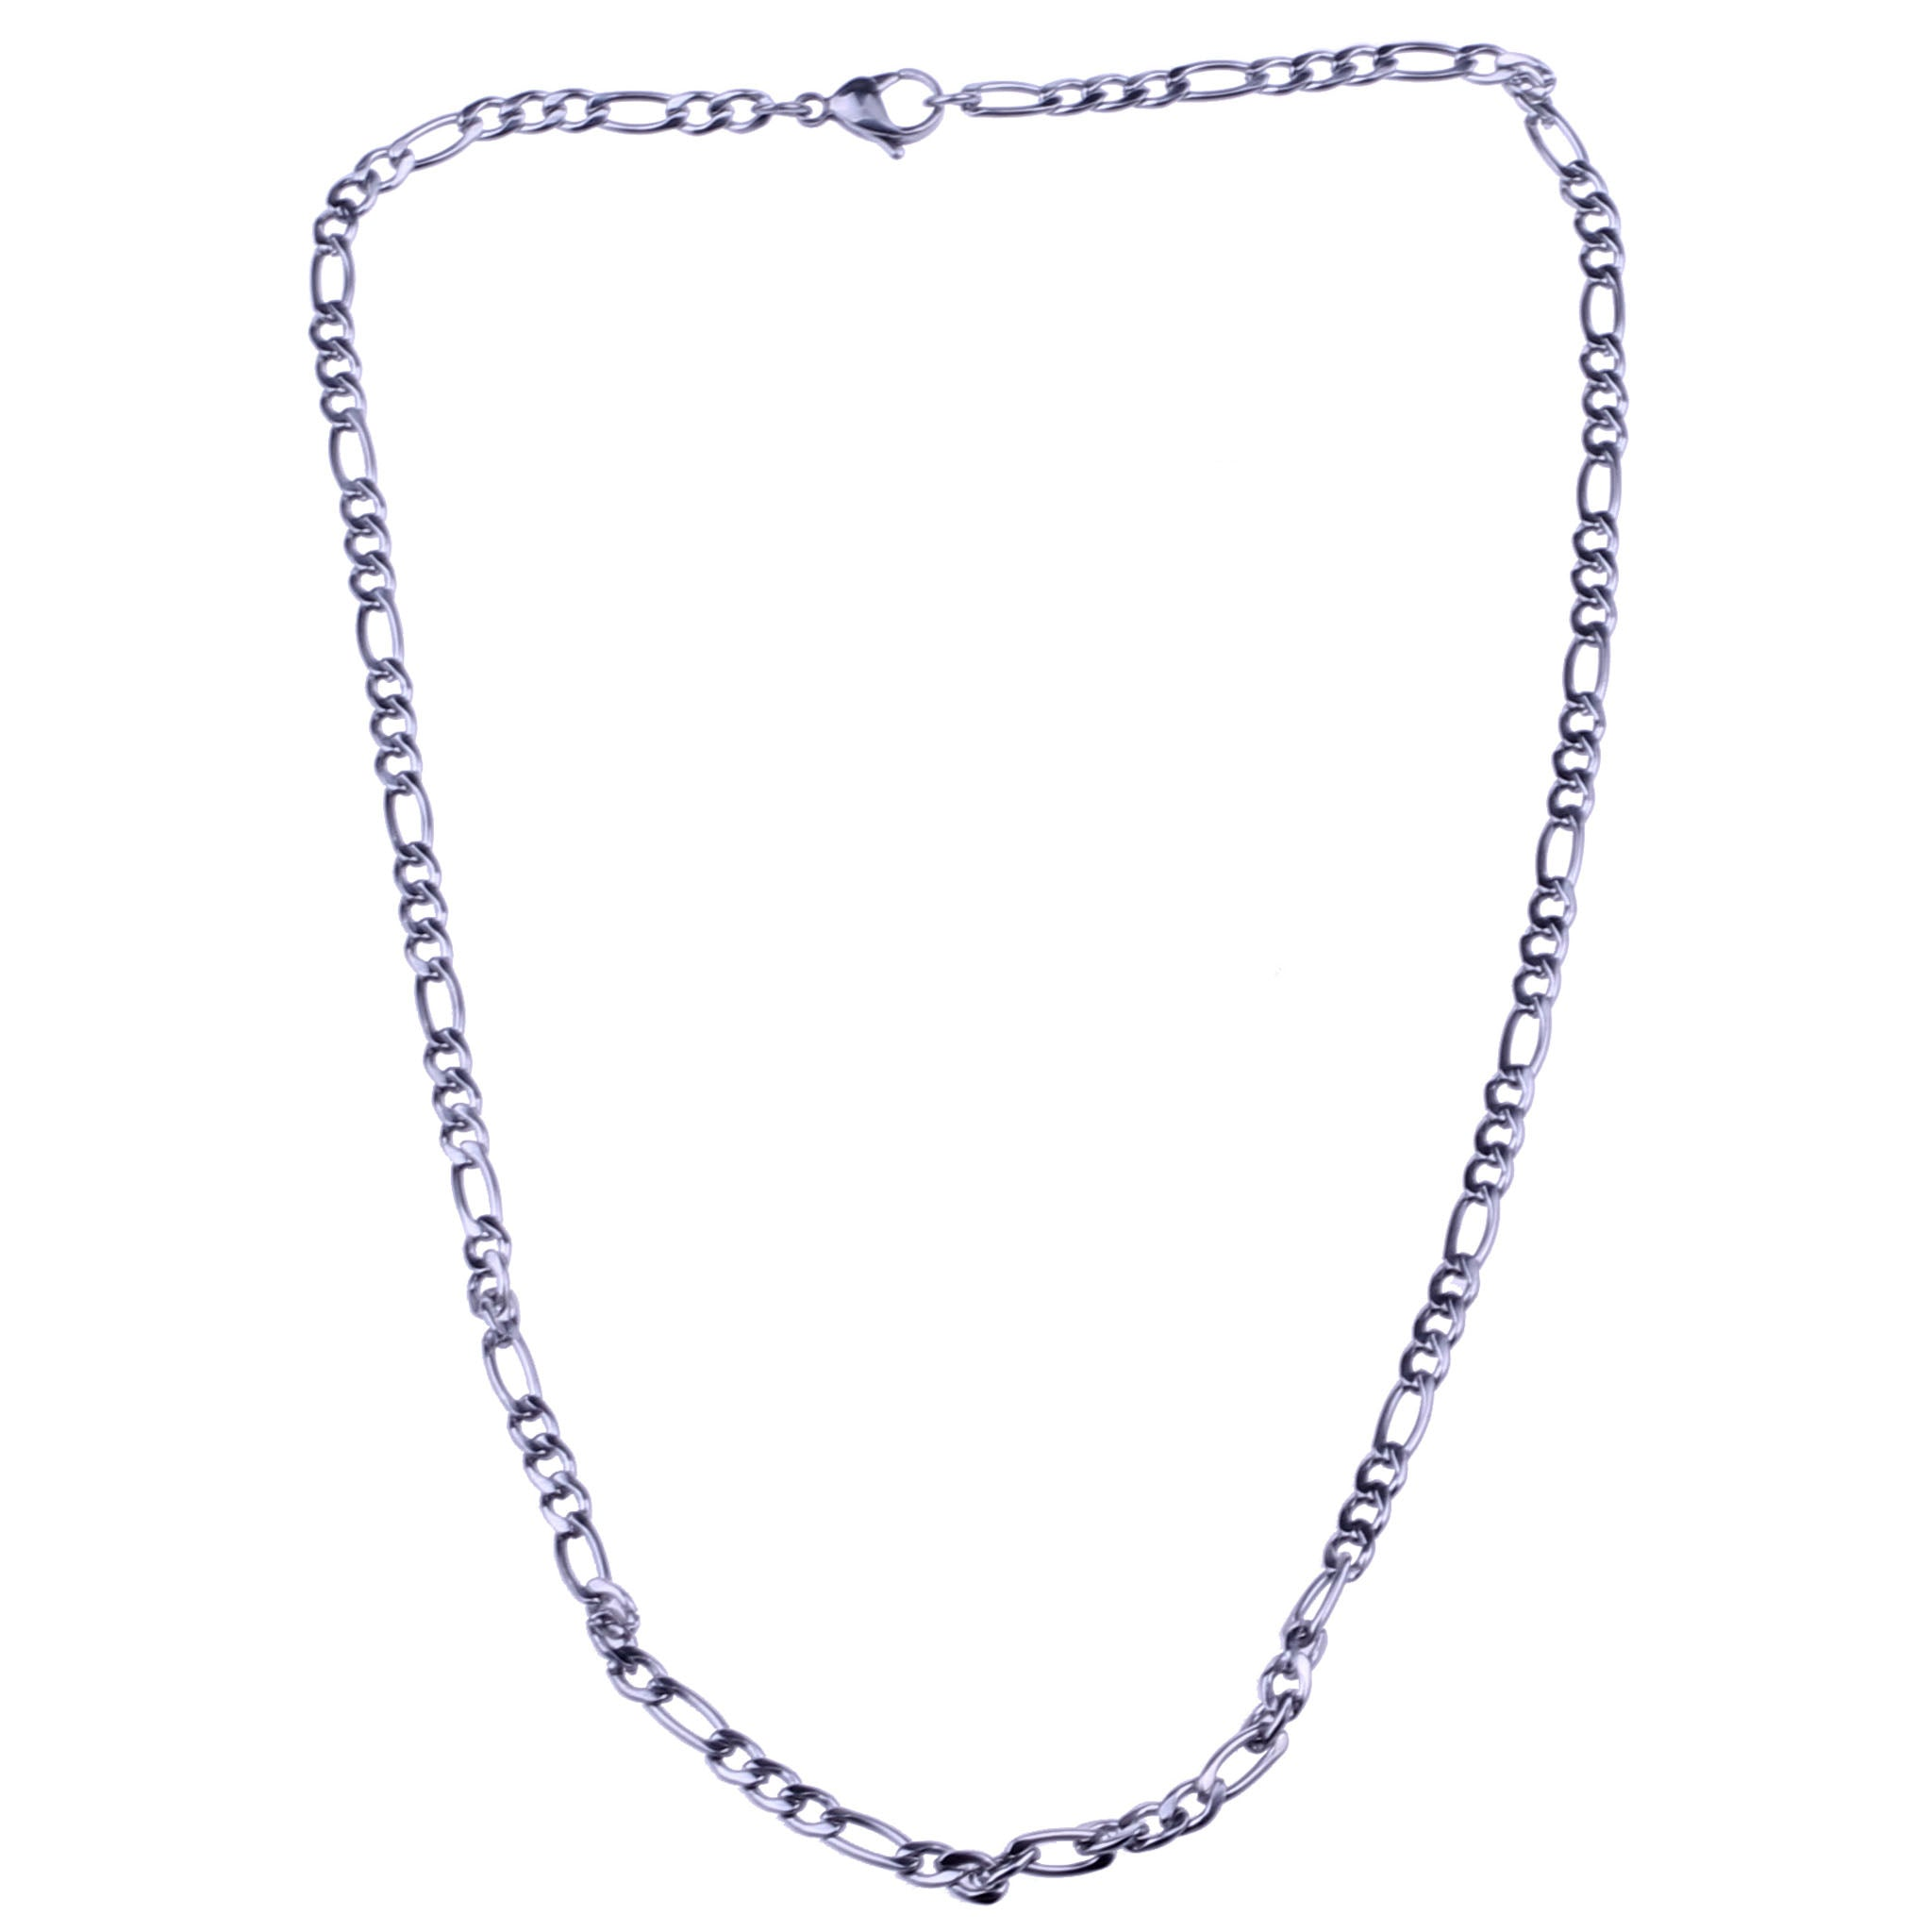 STEEL 316L NECKLACE